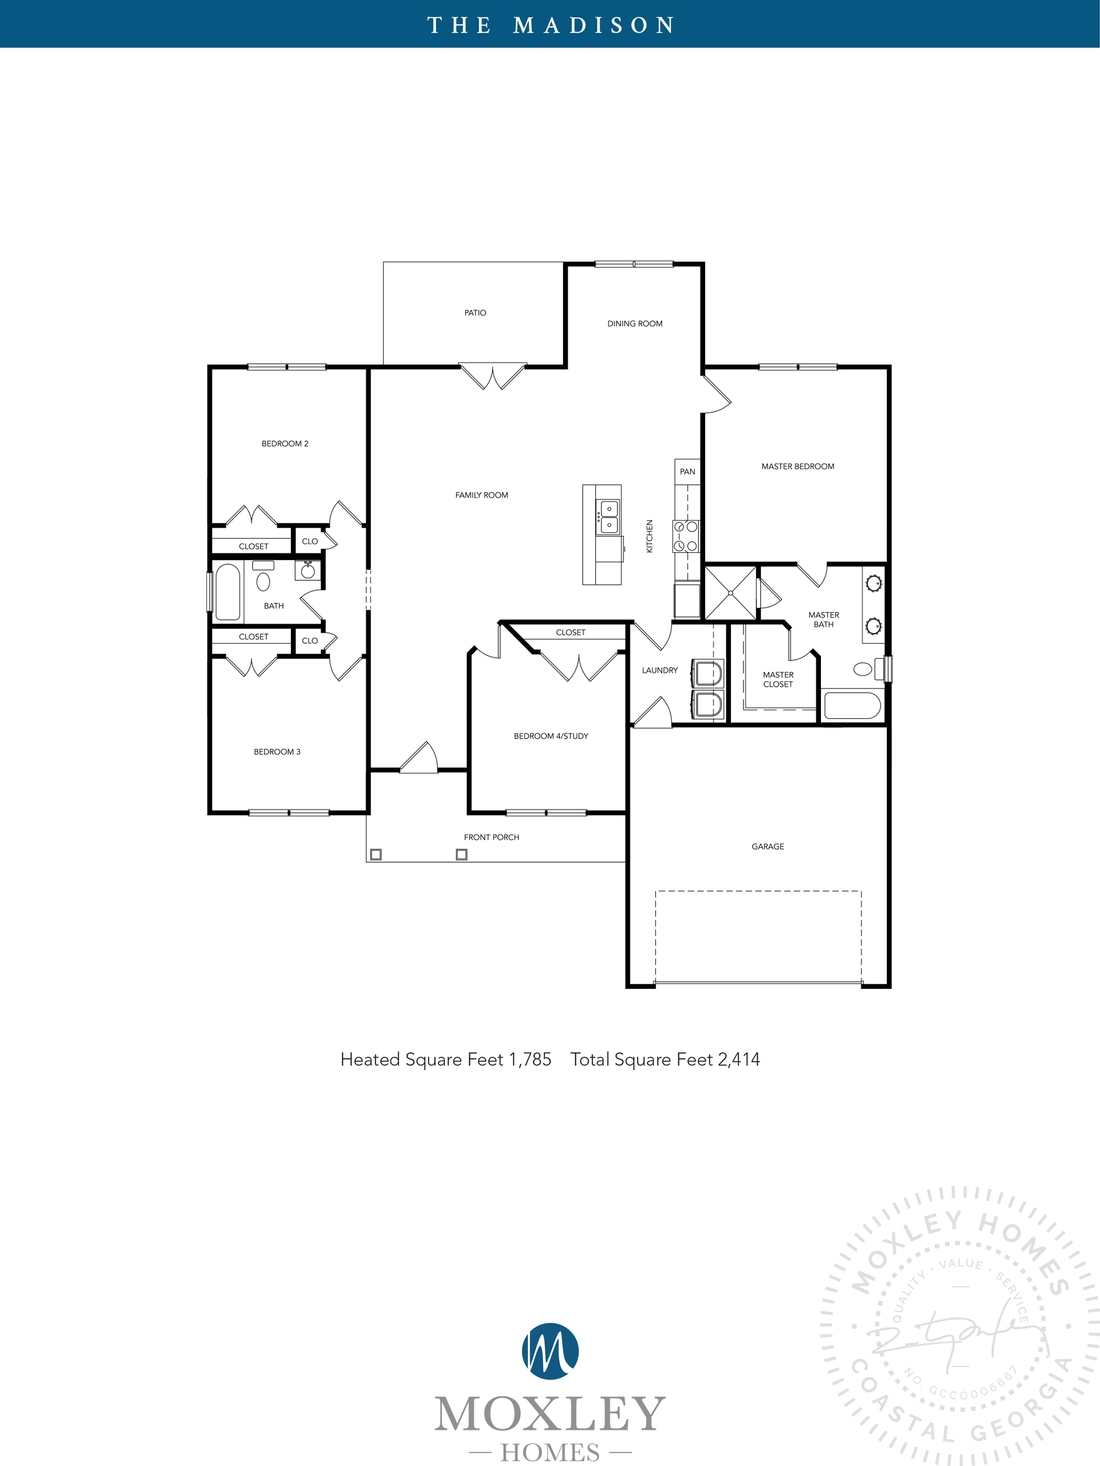 carriage gate plantation, grace crossing, The Madison floor plans